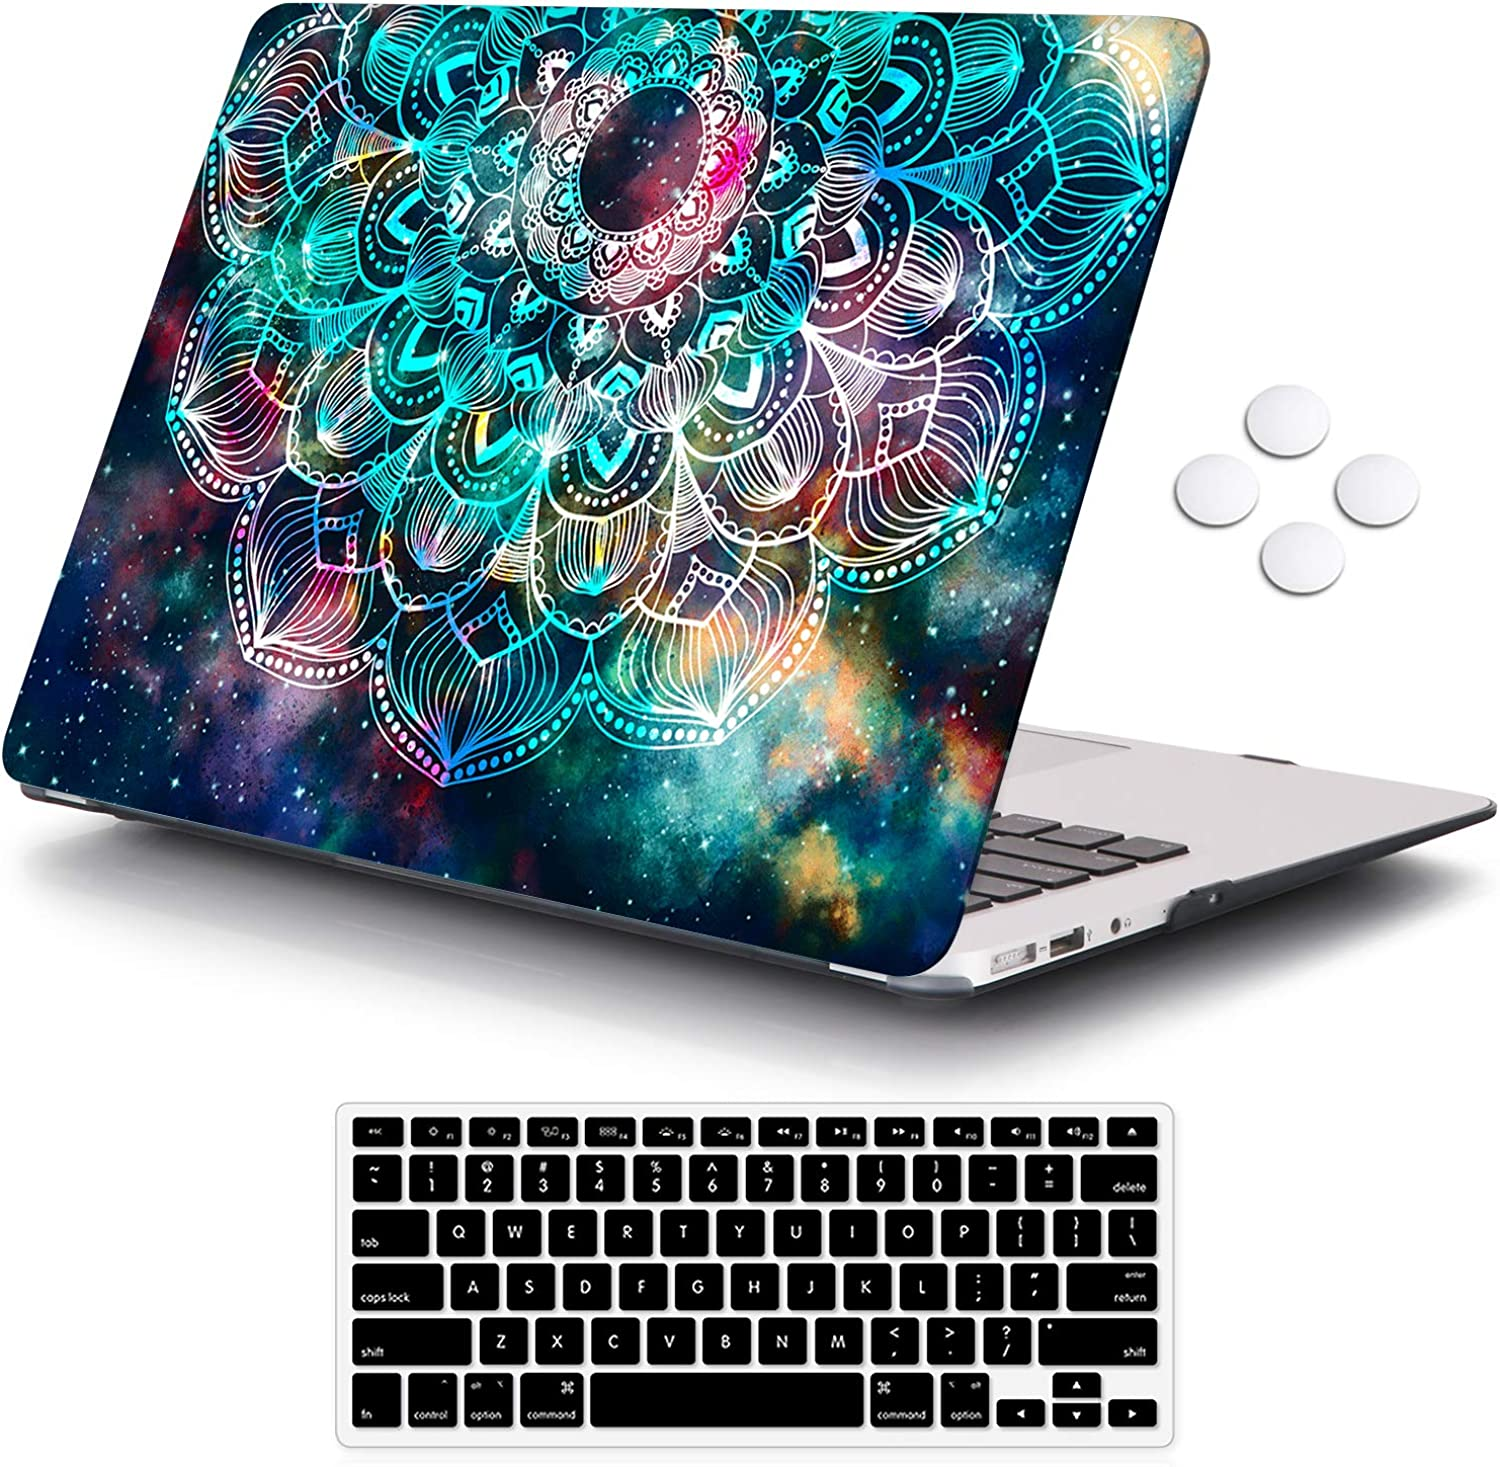 iCasso Macbook Air 11 inch Case Model A1370/A1465, Ultra Slim Pattern Plastic Hard Shell Case Protective Cover Compatible MacBook Air 11'' with Keyboard Cover - Nebula Mandala